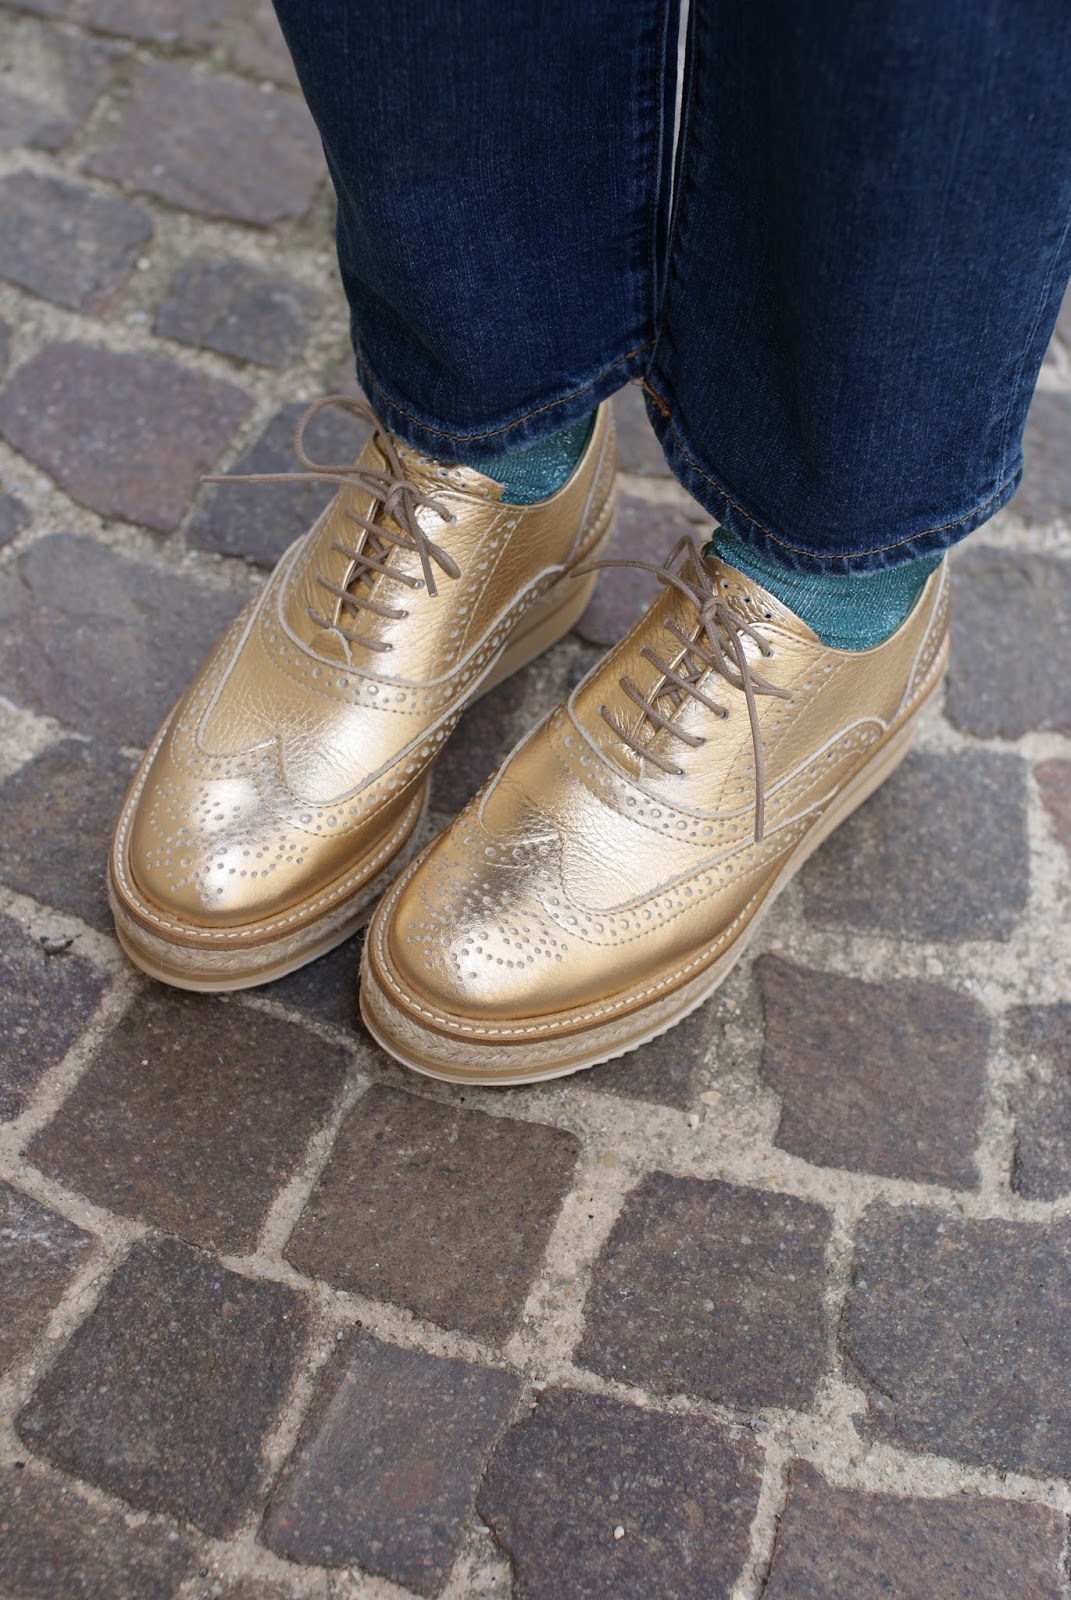 Made in Italy stringate donna dorate, Lorenzo Mari golden brogues on Fashion and Cookies fashion blog, fashion blogger style